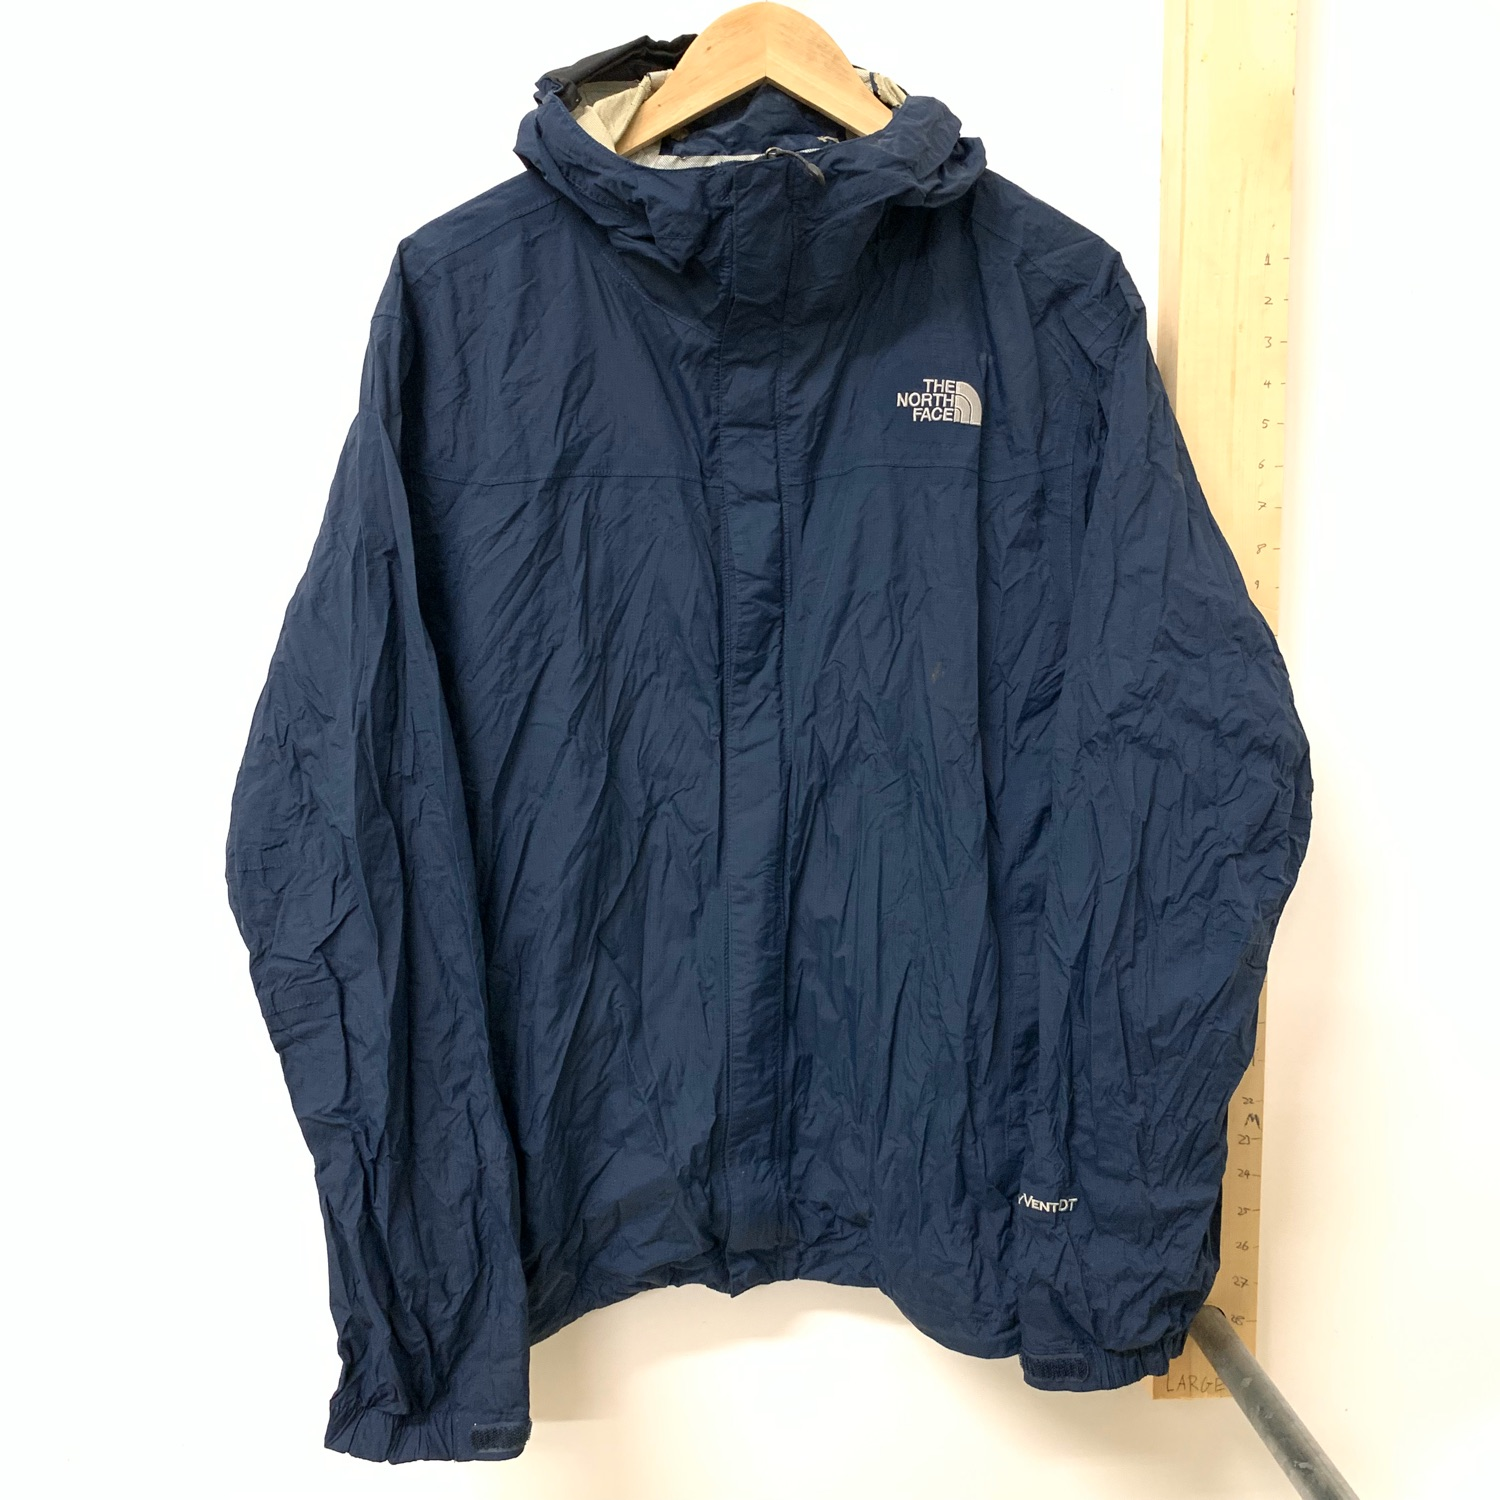 Vintage Navy The North Face Hyvent Jacket